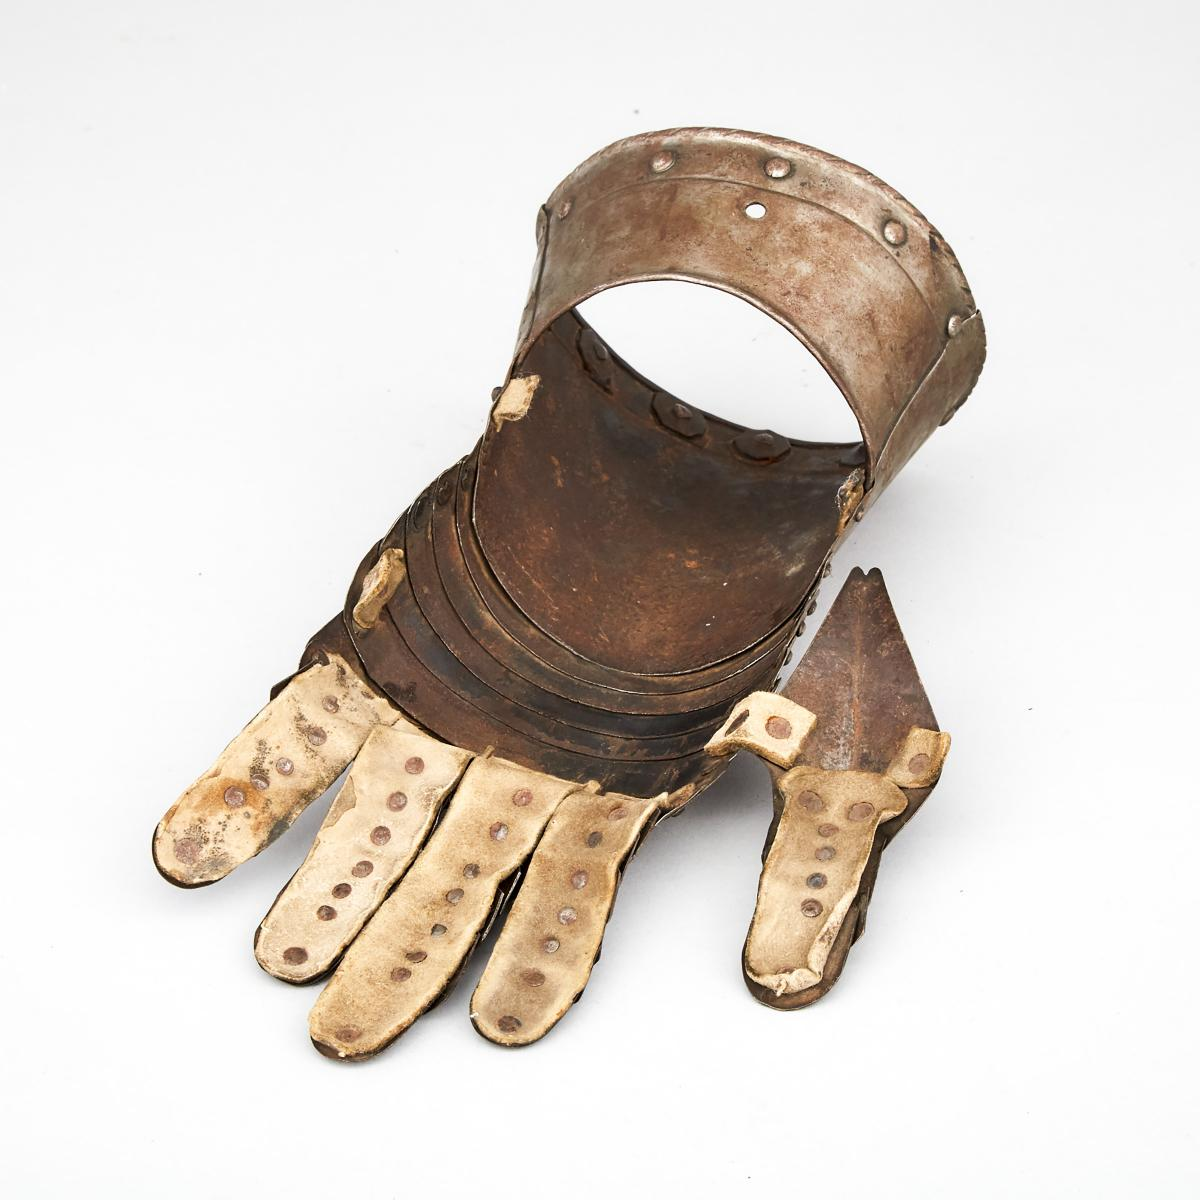 German Mid 16th century Style Left Hand Gauntlet, 19th century, length 12 in — 30.5 cm - Image 3 of 3